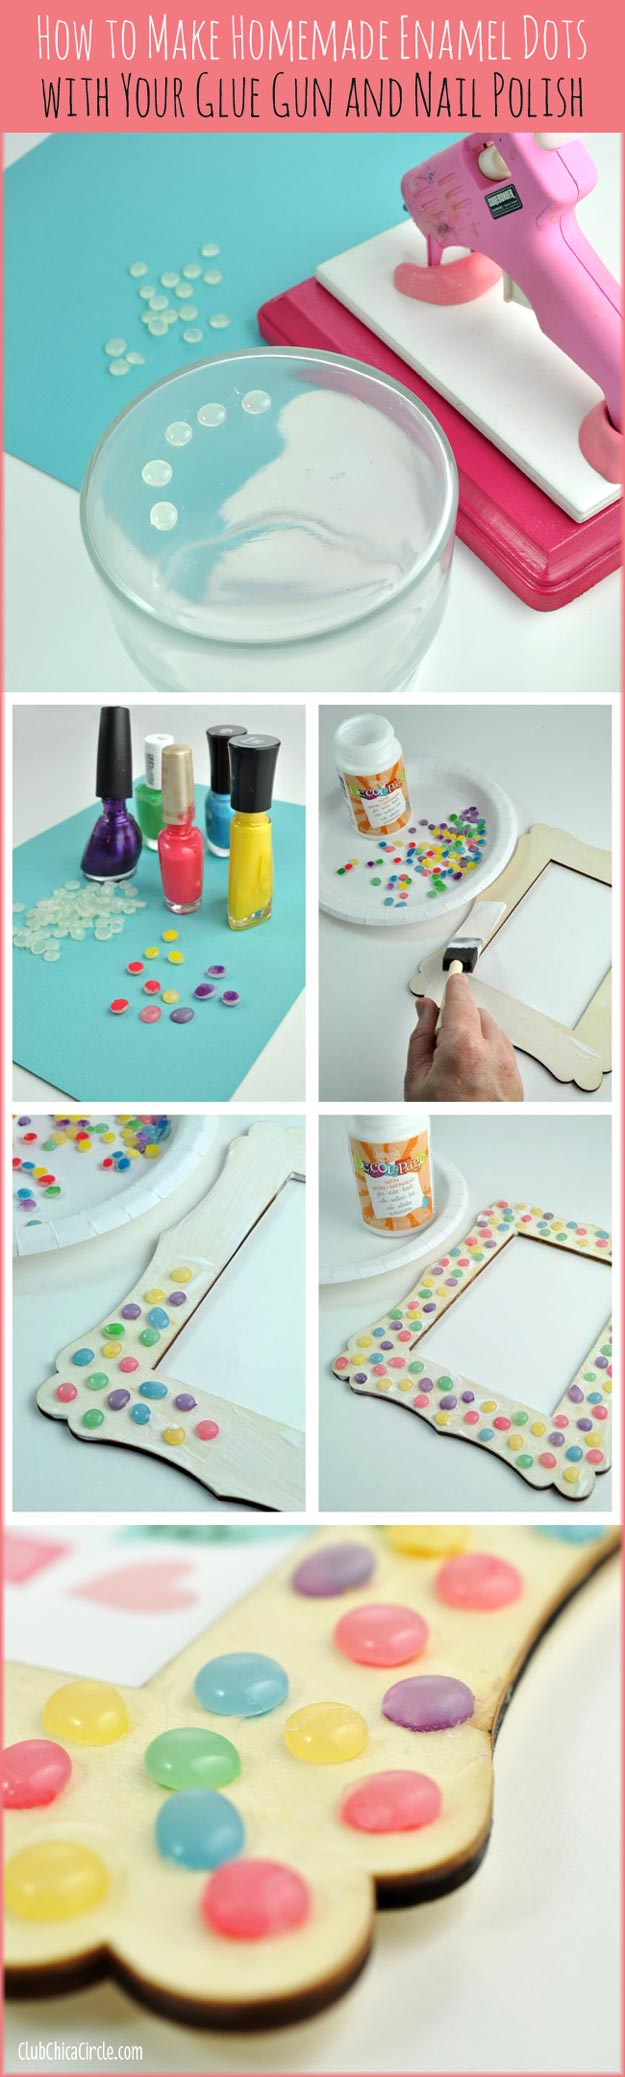 31 incredibly cool diy crafts using nail polish for Hot glue guns for crafts